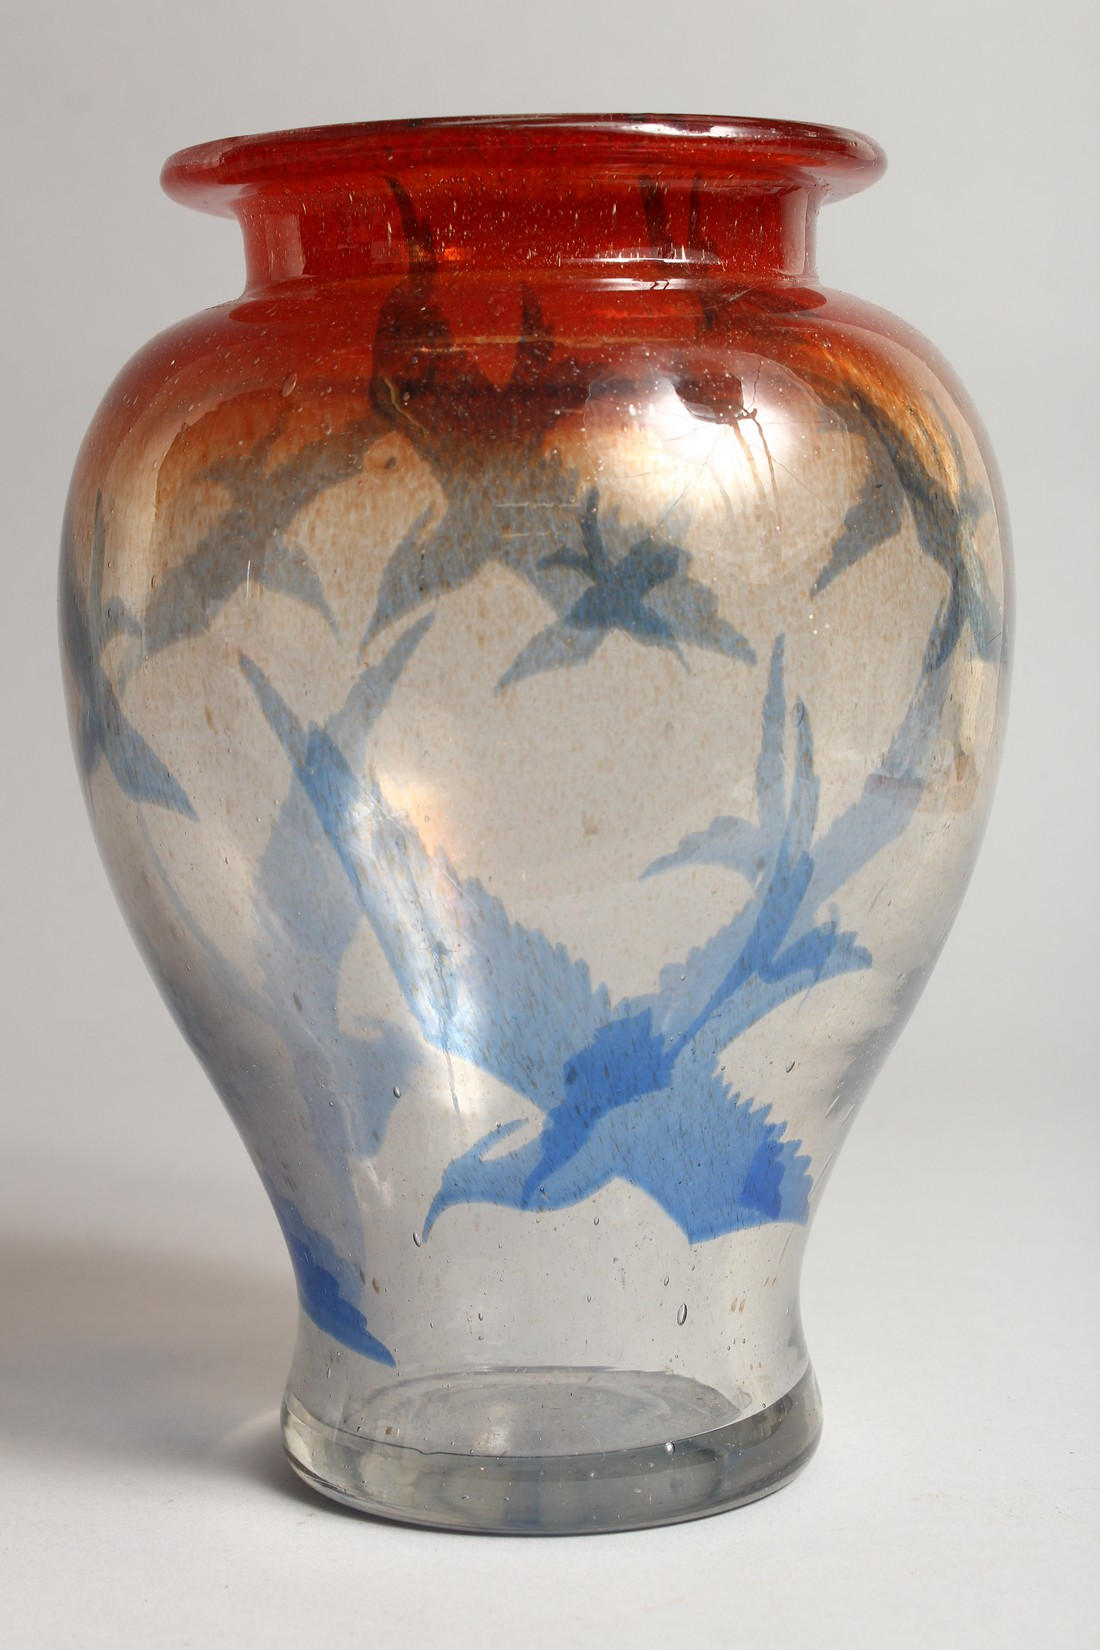 A DANISH ART GLASS VASE, CIRCA 1920, the orange and clear glass body decorated with birds 9.5ins - Image 2 of 6